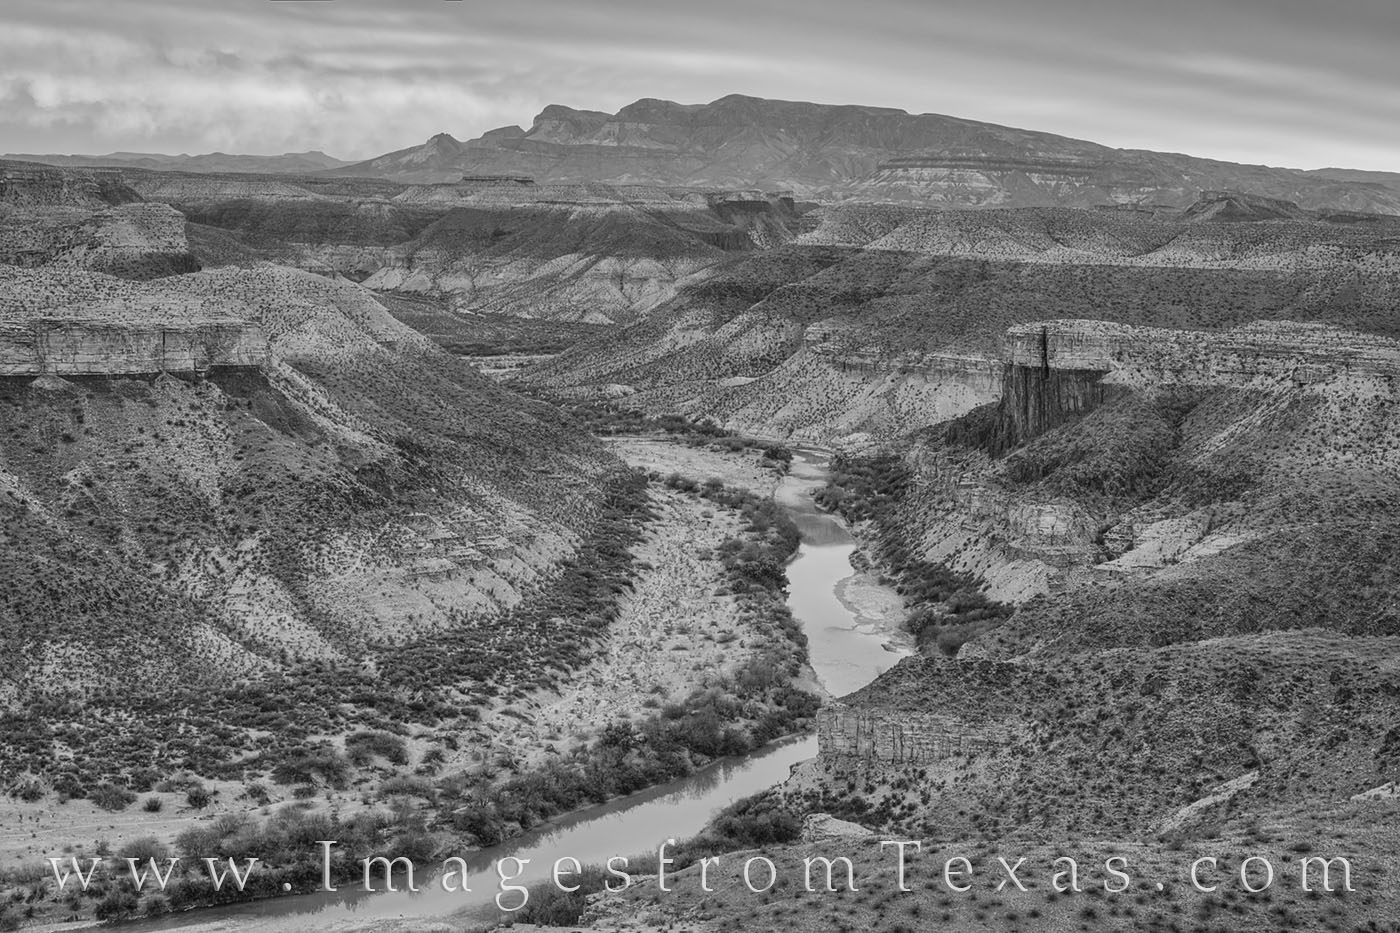 This black and white image from Big Bend National Park shows a bend in the Rio Grande from high up on the Mesa de Anguila. This...